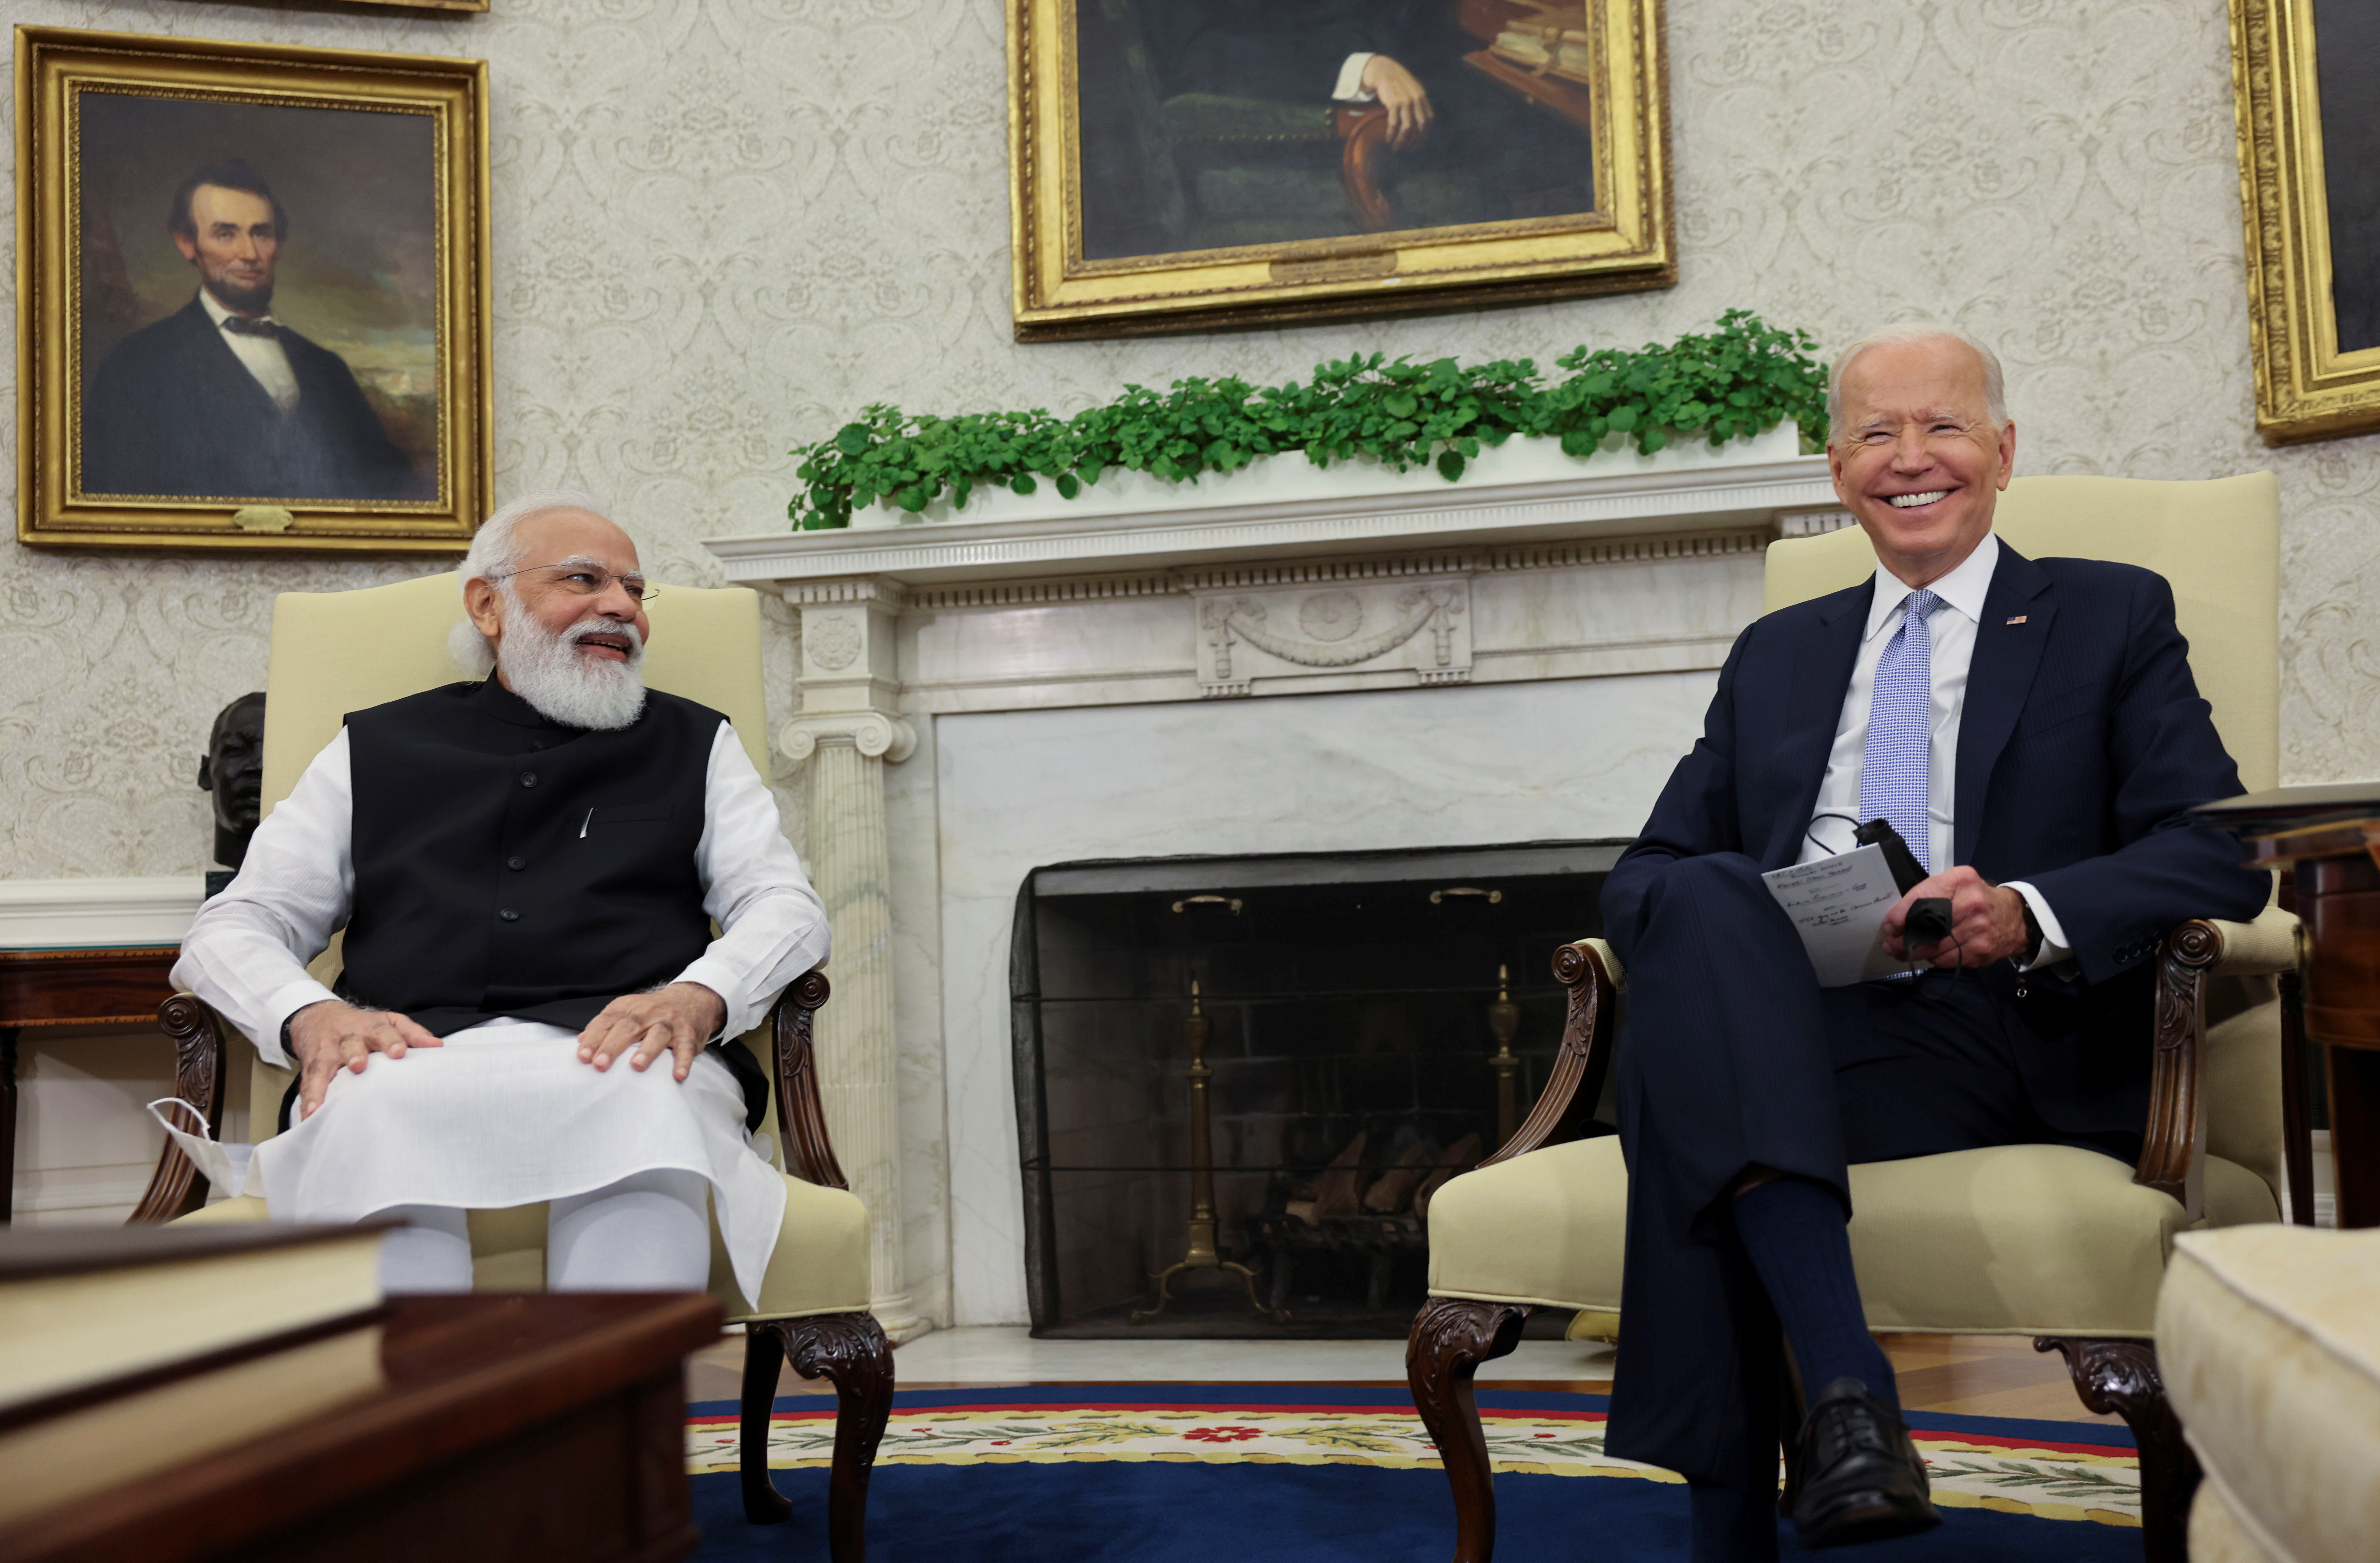 U.S. President Joe Biden meets with India's Prime Minister Narendra Modi in the Oval Office at the White House in Washington, U.S., September 24, 2021. REUTERS/Evelyn Hockstein